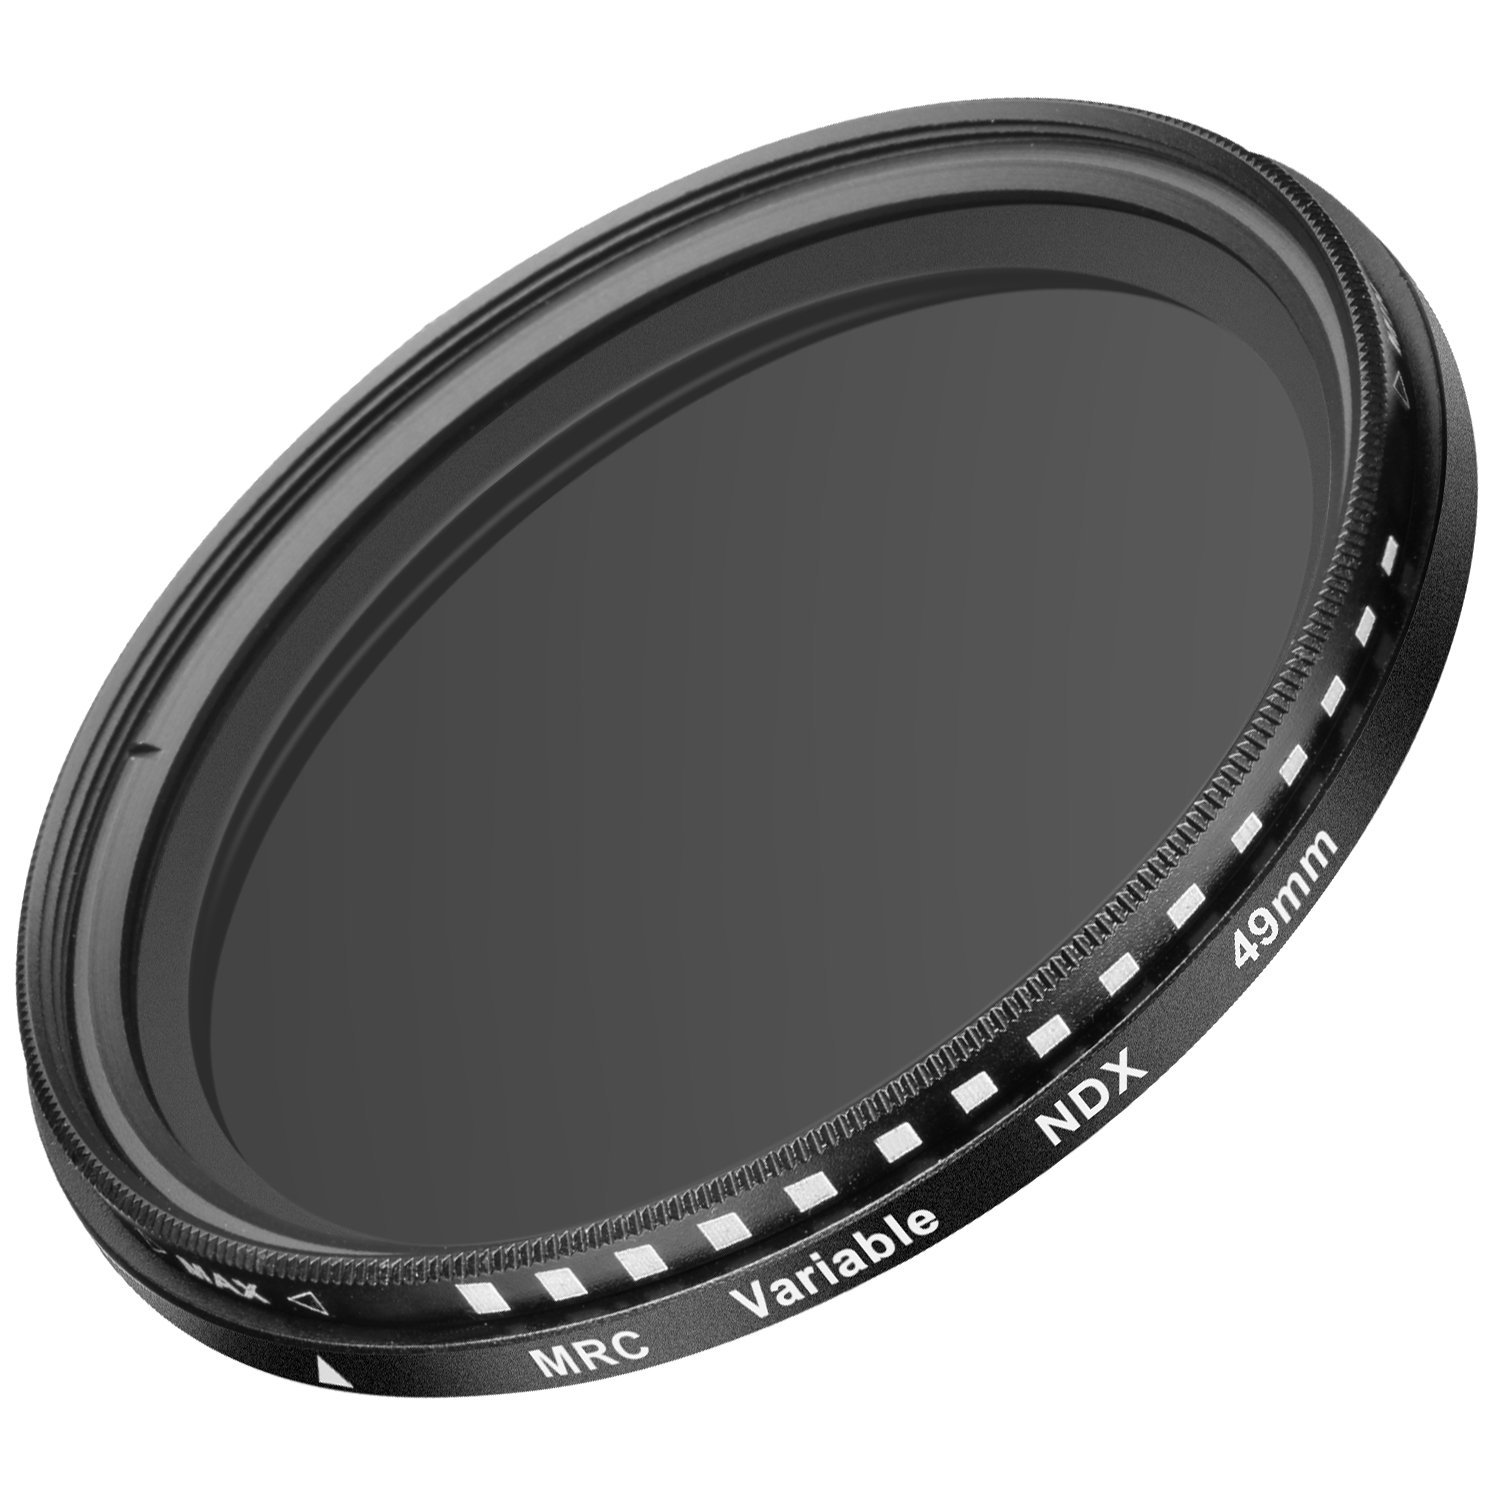 Neewer 49MM Ultra Slim ND2-ND400 Fader Neutral Density Adjustable Lens Filter for Camera Lens with 49MM Filter Thread Size, Made of Optical Glass and Aluminum Alloy Frame